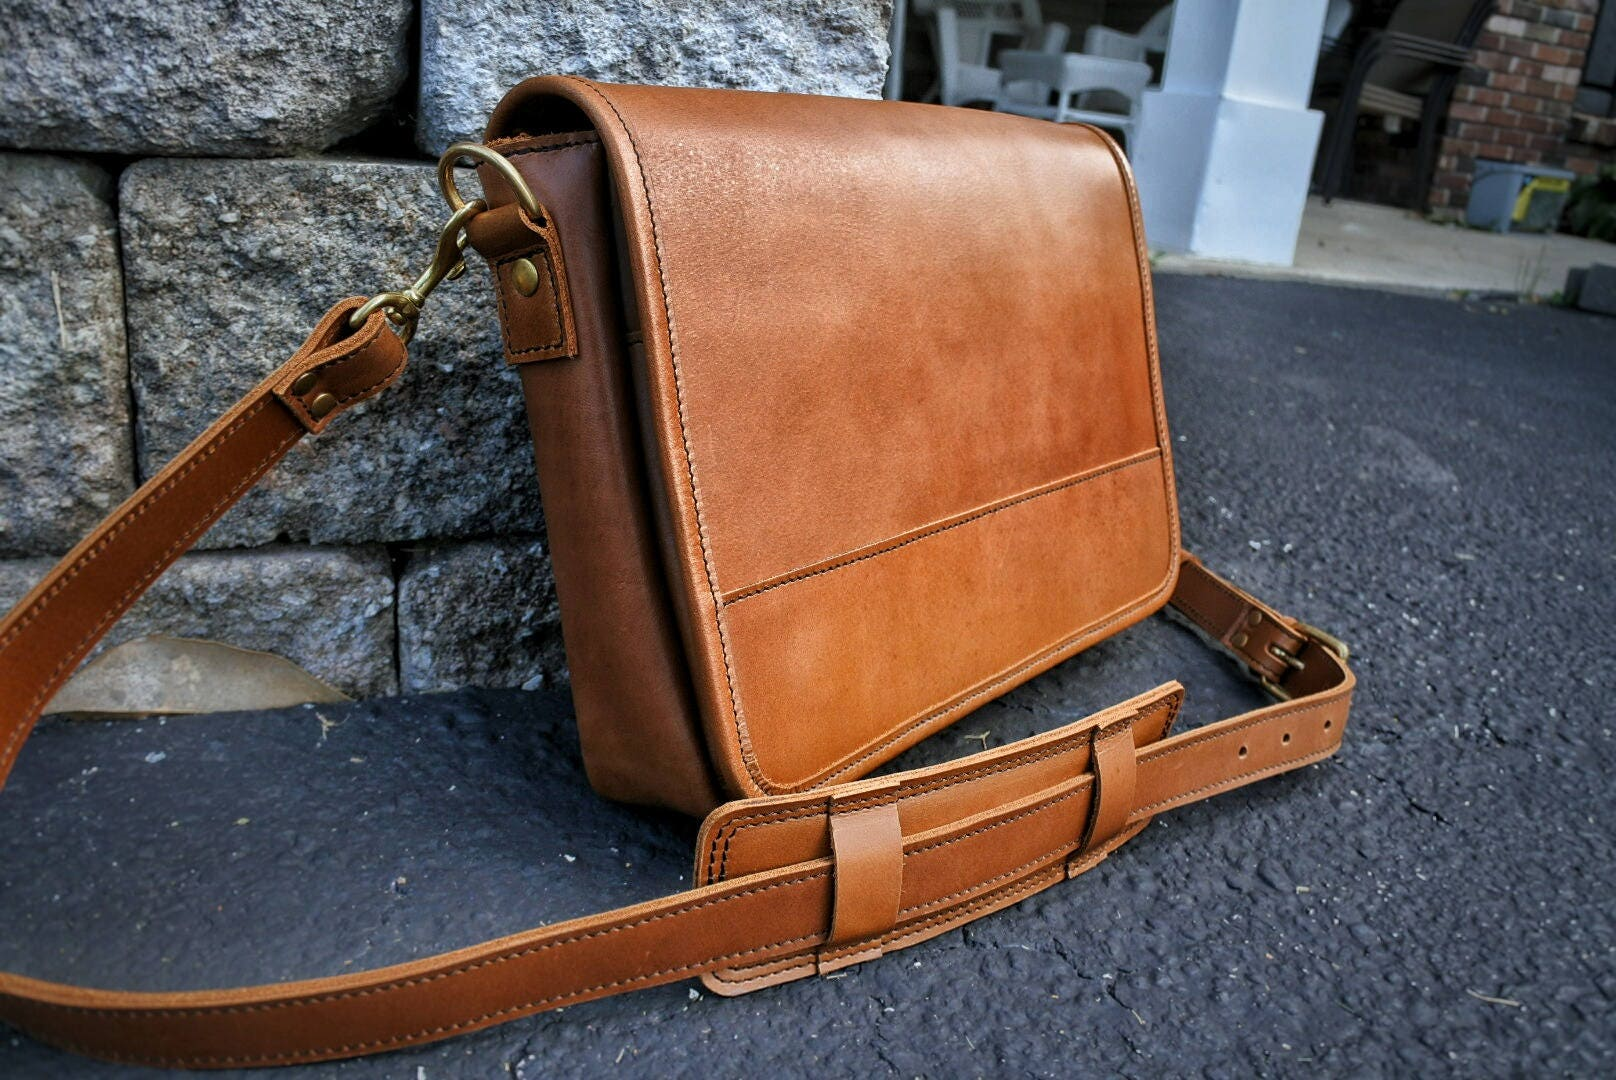 923a38393611 Clearance* - Mens Leather Satchel, Leather Crossbody Bag, Handmade Leather  Messenger Bag Men, Leather Laptop Bag Women